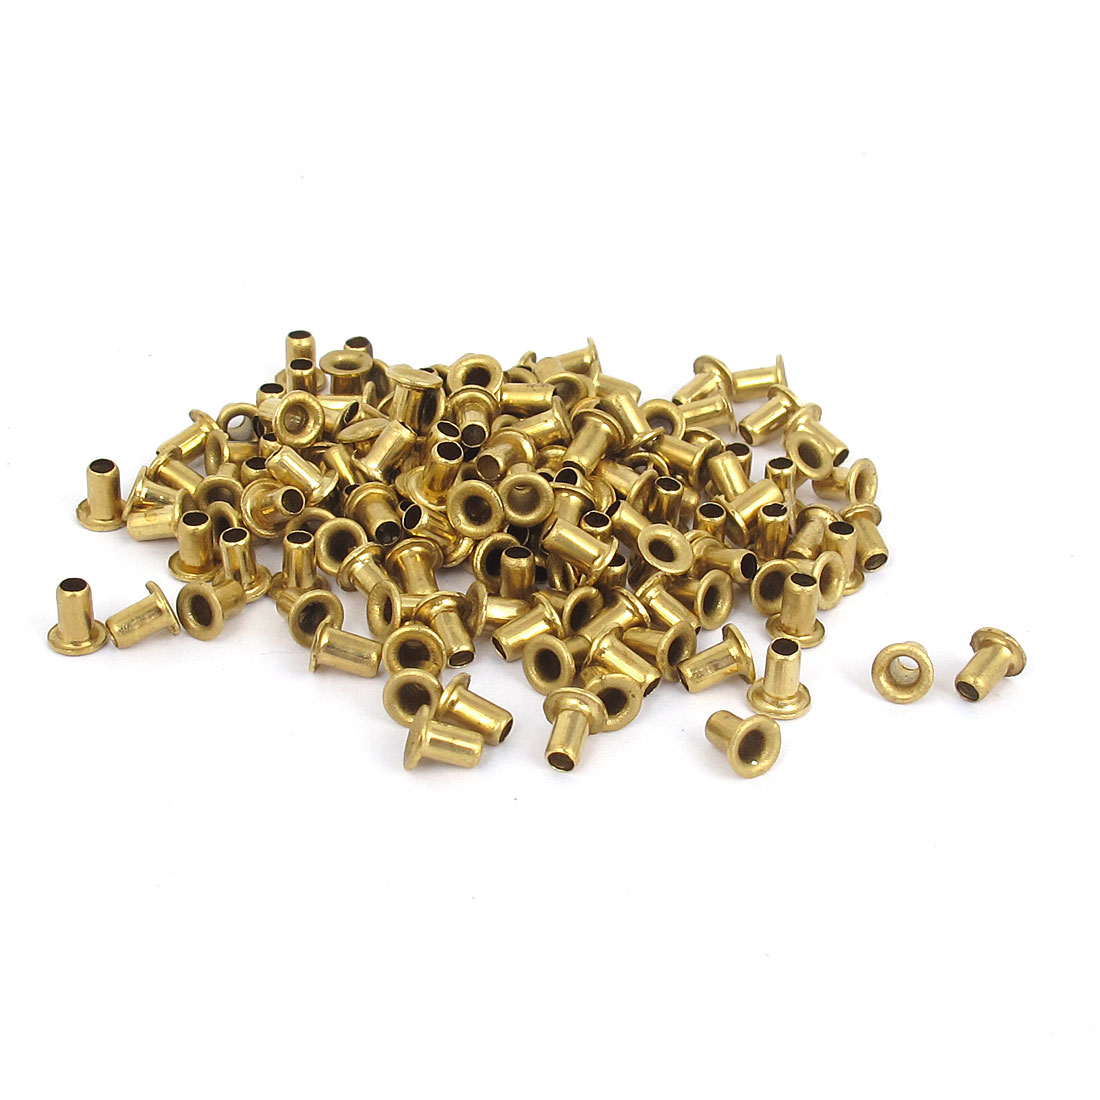 Bee Hive Box Nest Brass Eye Apiculture Beekeeping Copper Cap Tools 100pcs